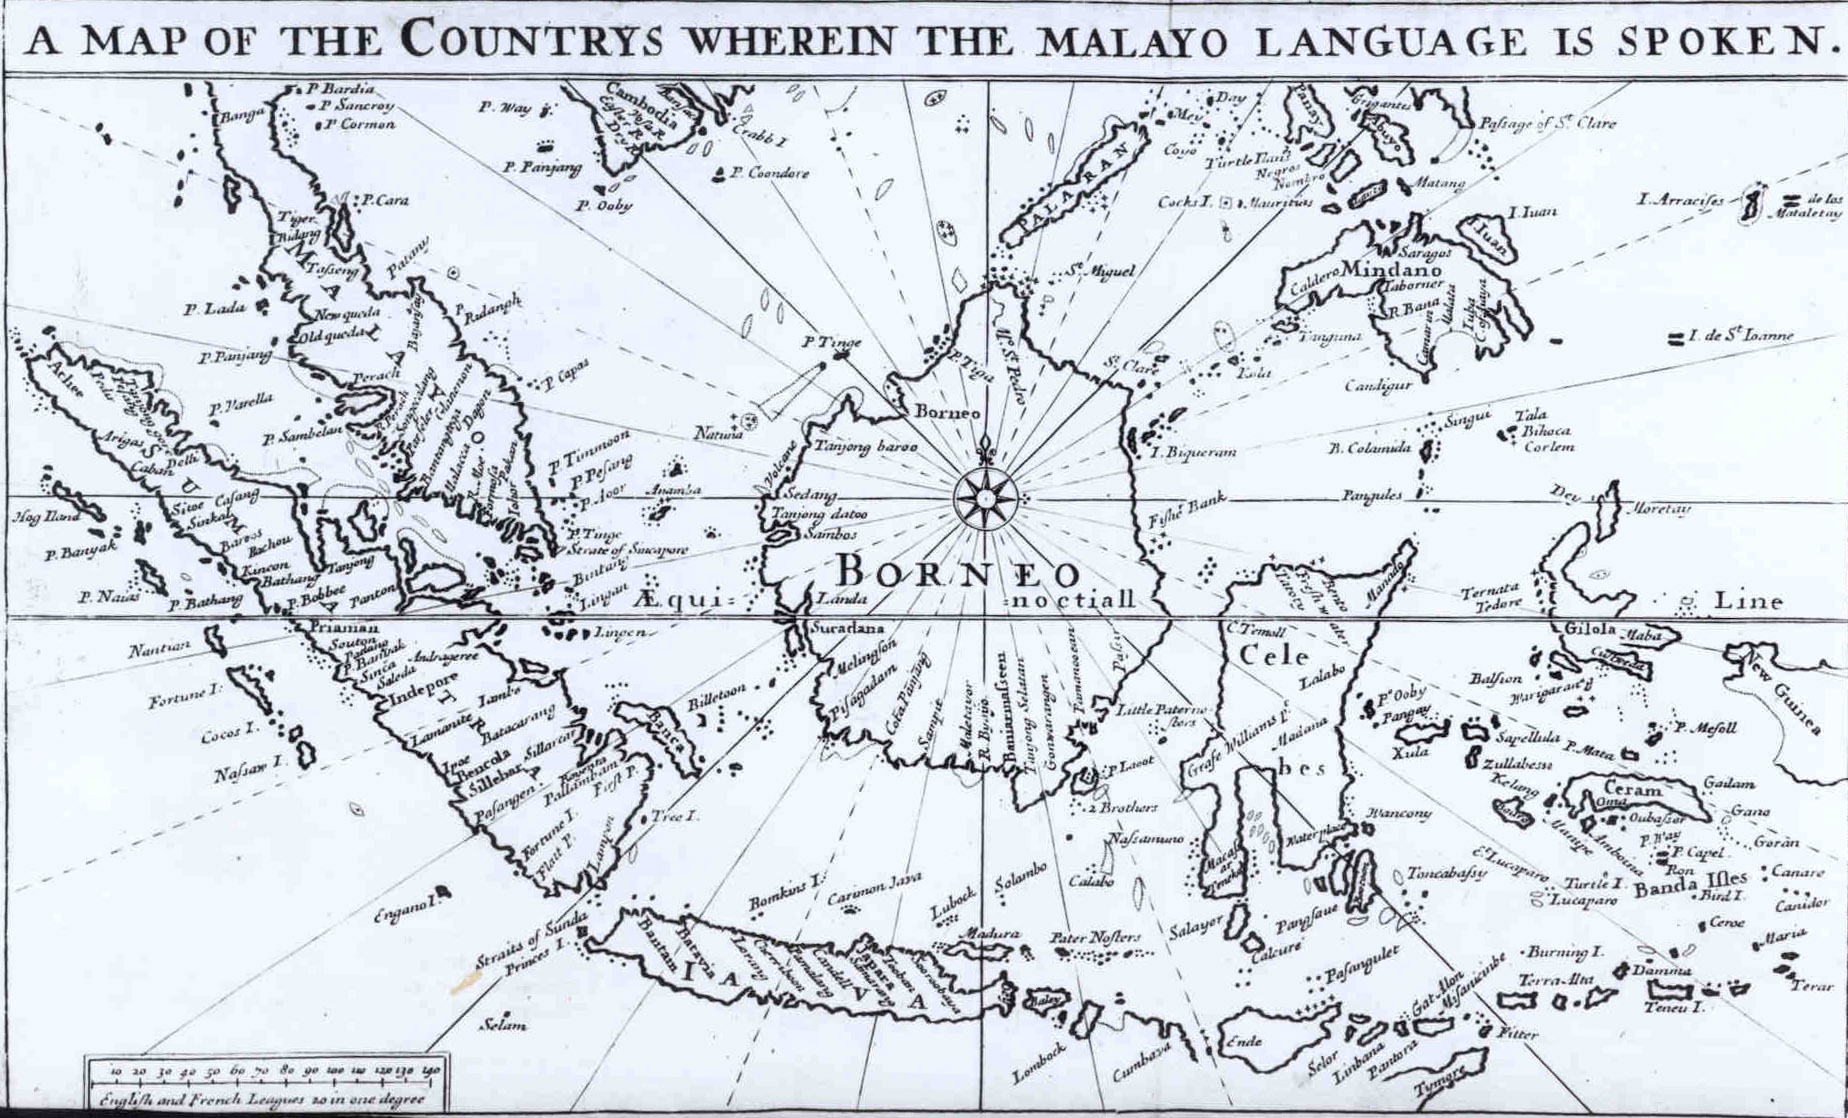 Asian and African studies blog: Malay